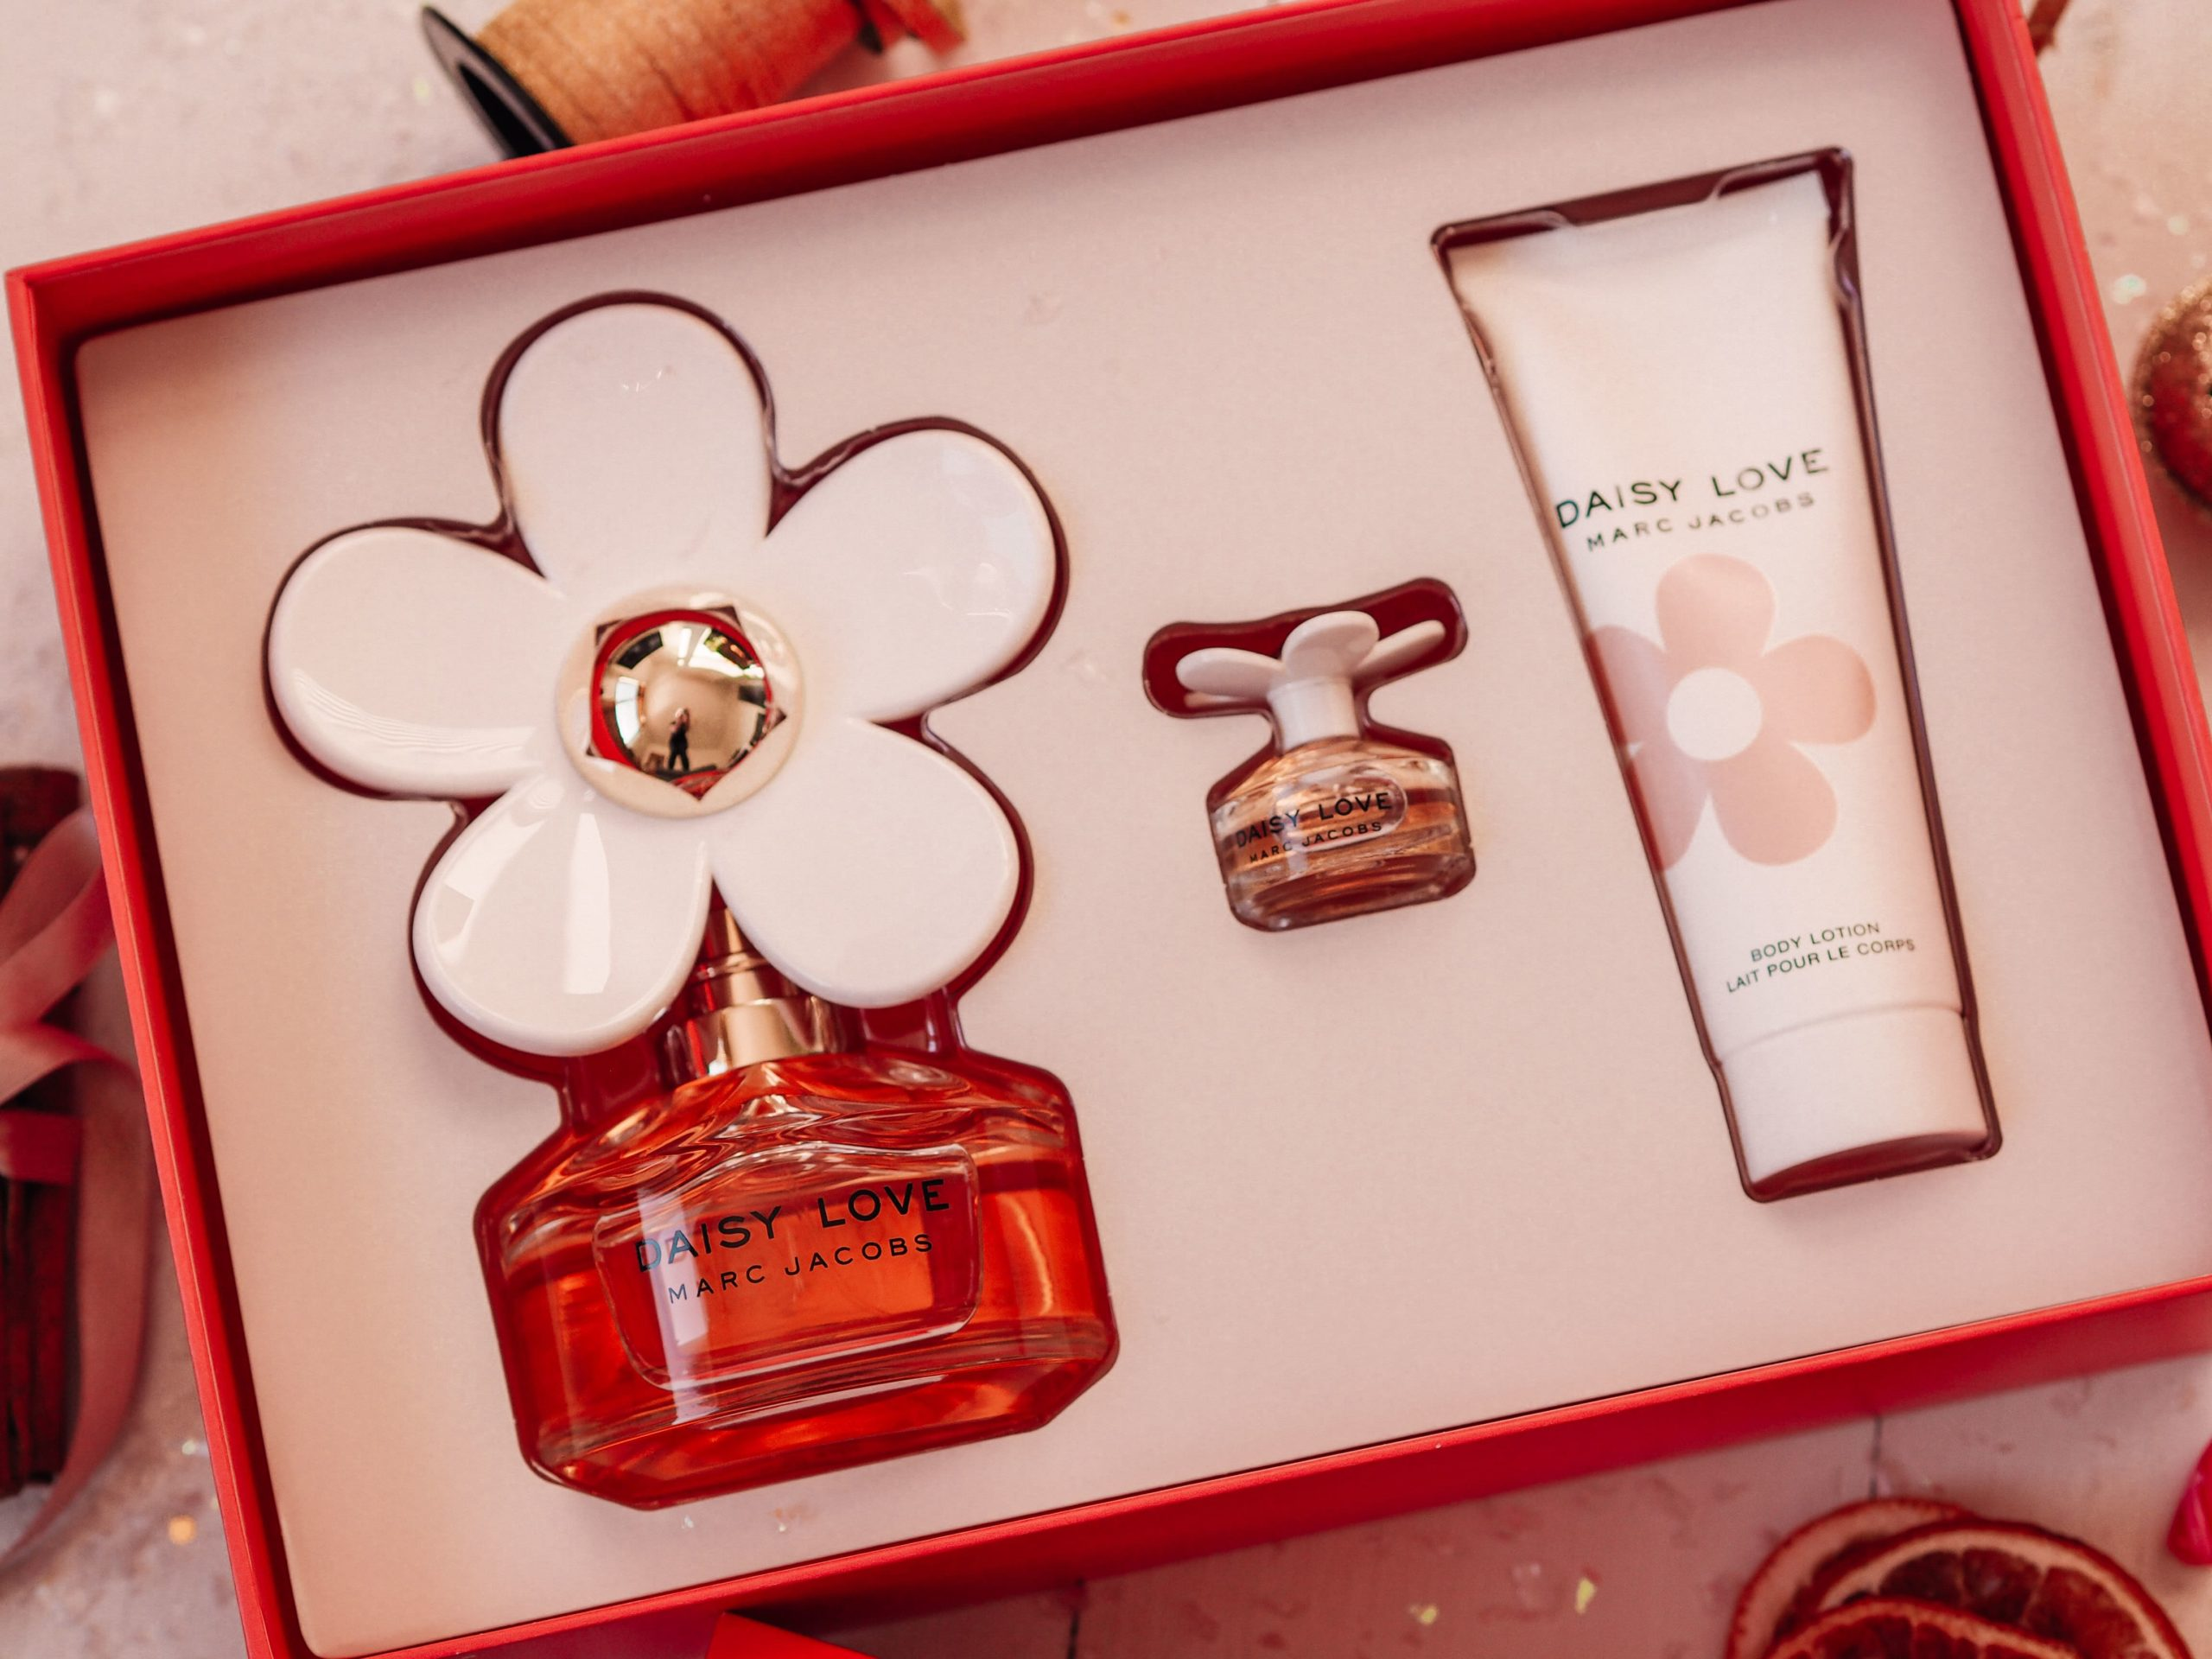 Marc Jacobs Daisy Love Gift Set 100ml